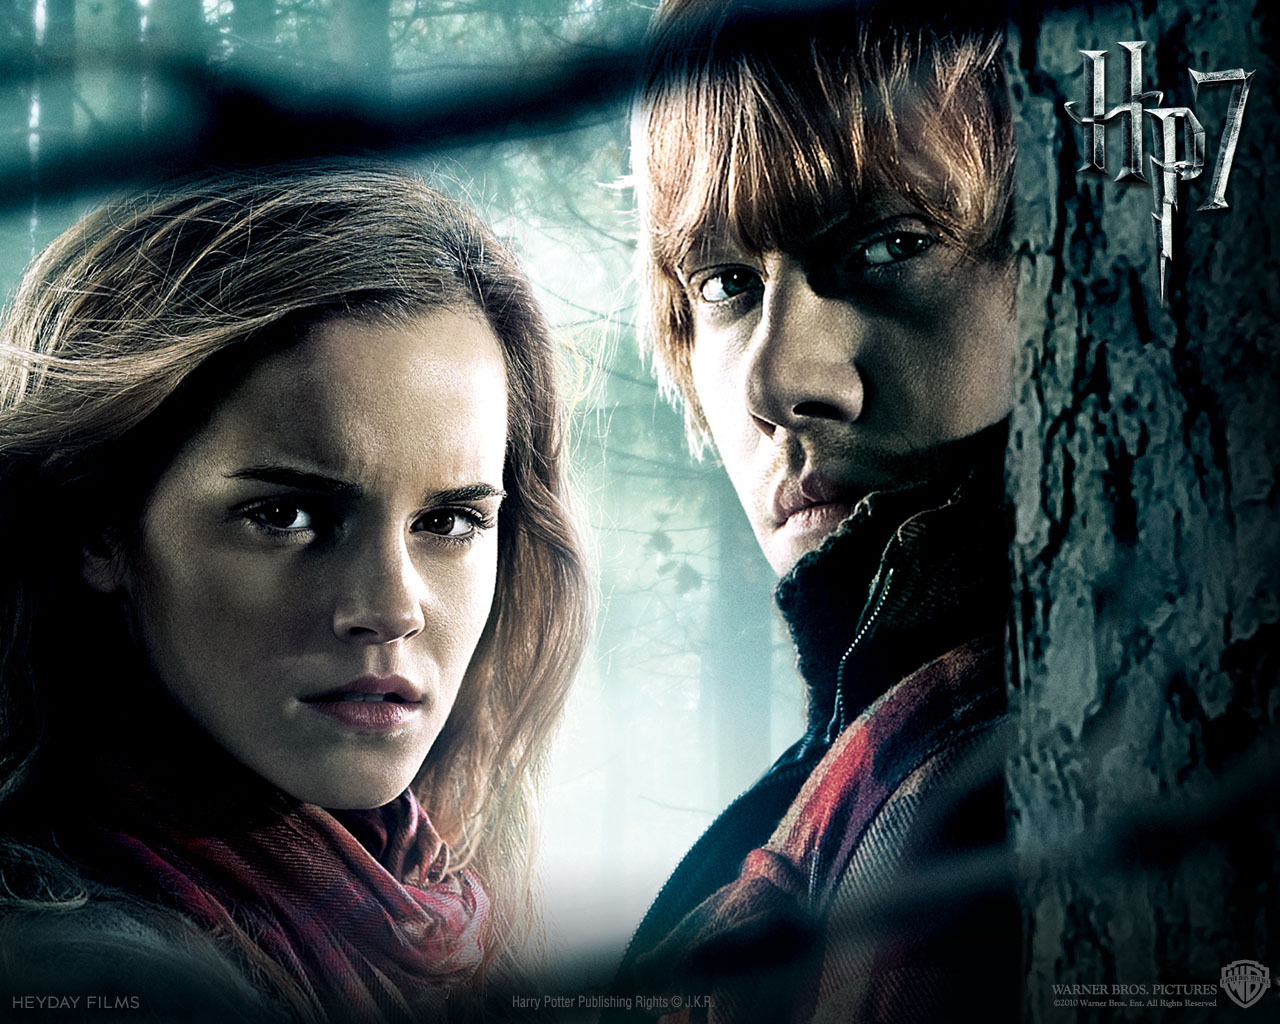 http://4.bp.blogspot.com/-Rrv2SaWsy_w/TikcRIQN56I/AAAAAAAAADY/gZ9jgIL6JSc/s1600/Emma_Watson_in_Harry_Potter_and_the_Deathly_Hallows+_Part_I_Wallpaper_10_800.jpg